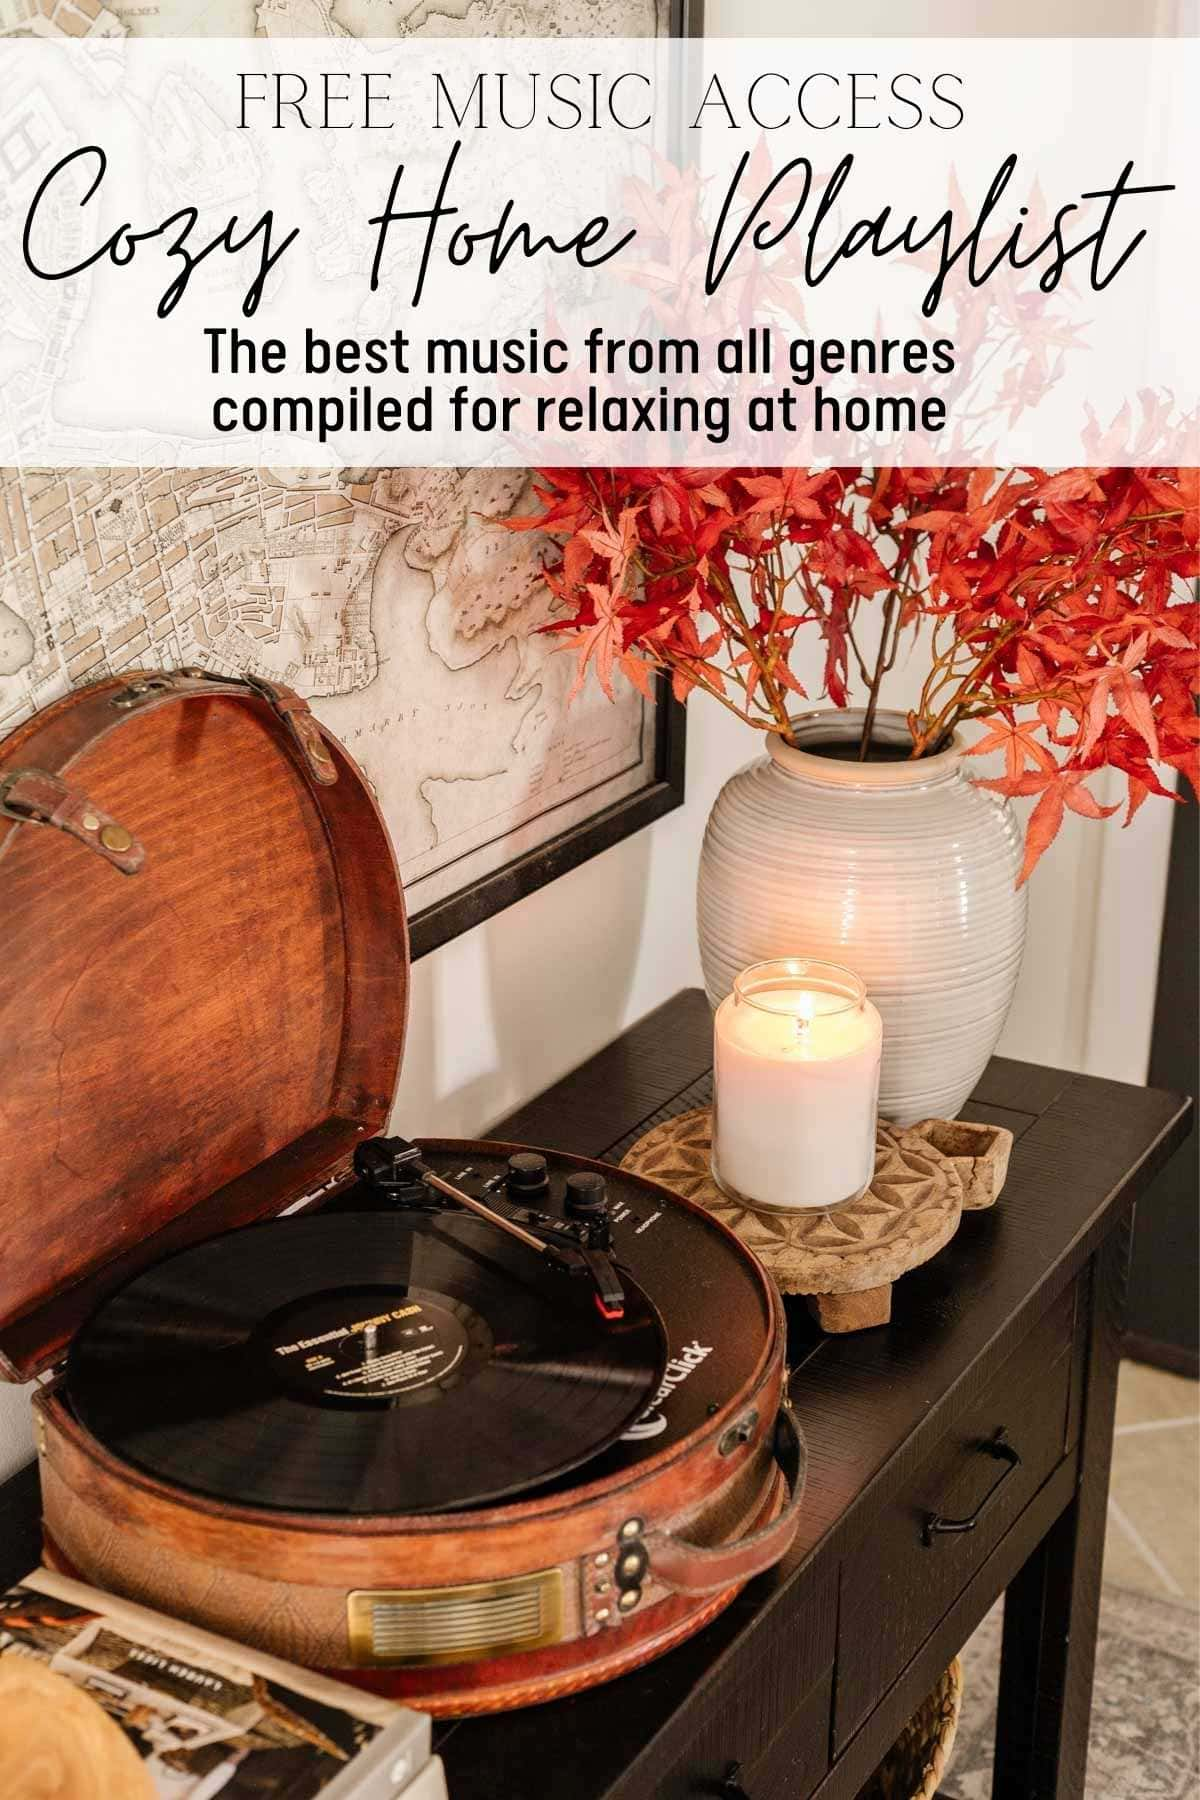 Free music access to the cozy home playlist with the best relaxing music from all genres compiled for chilling at home